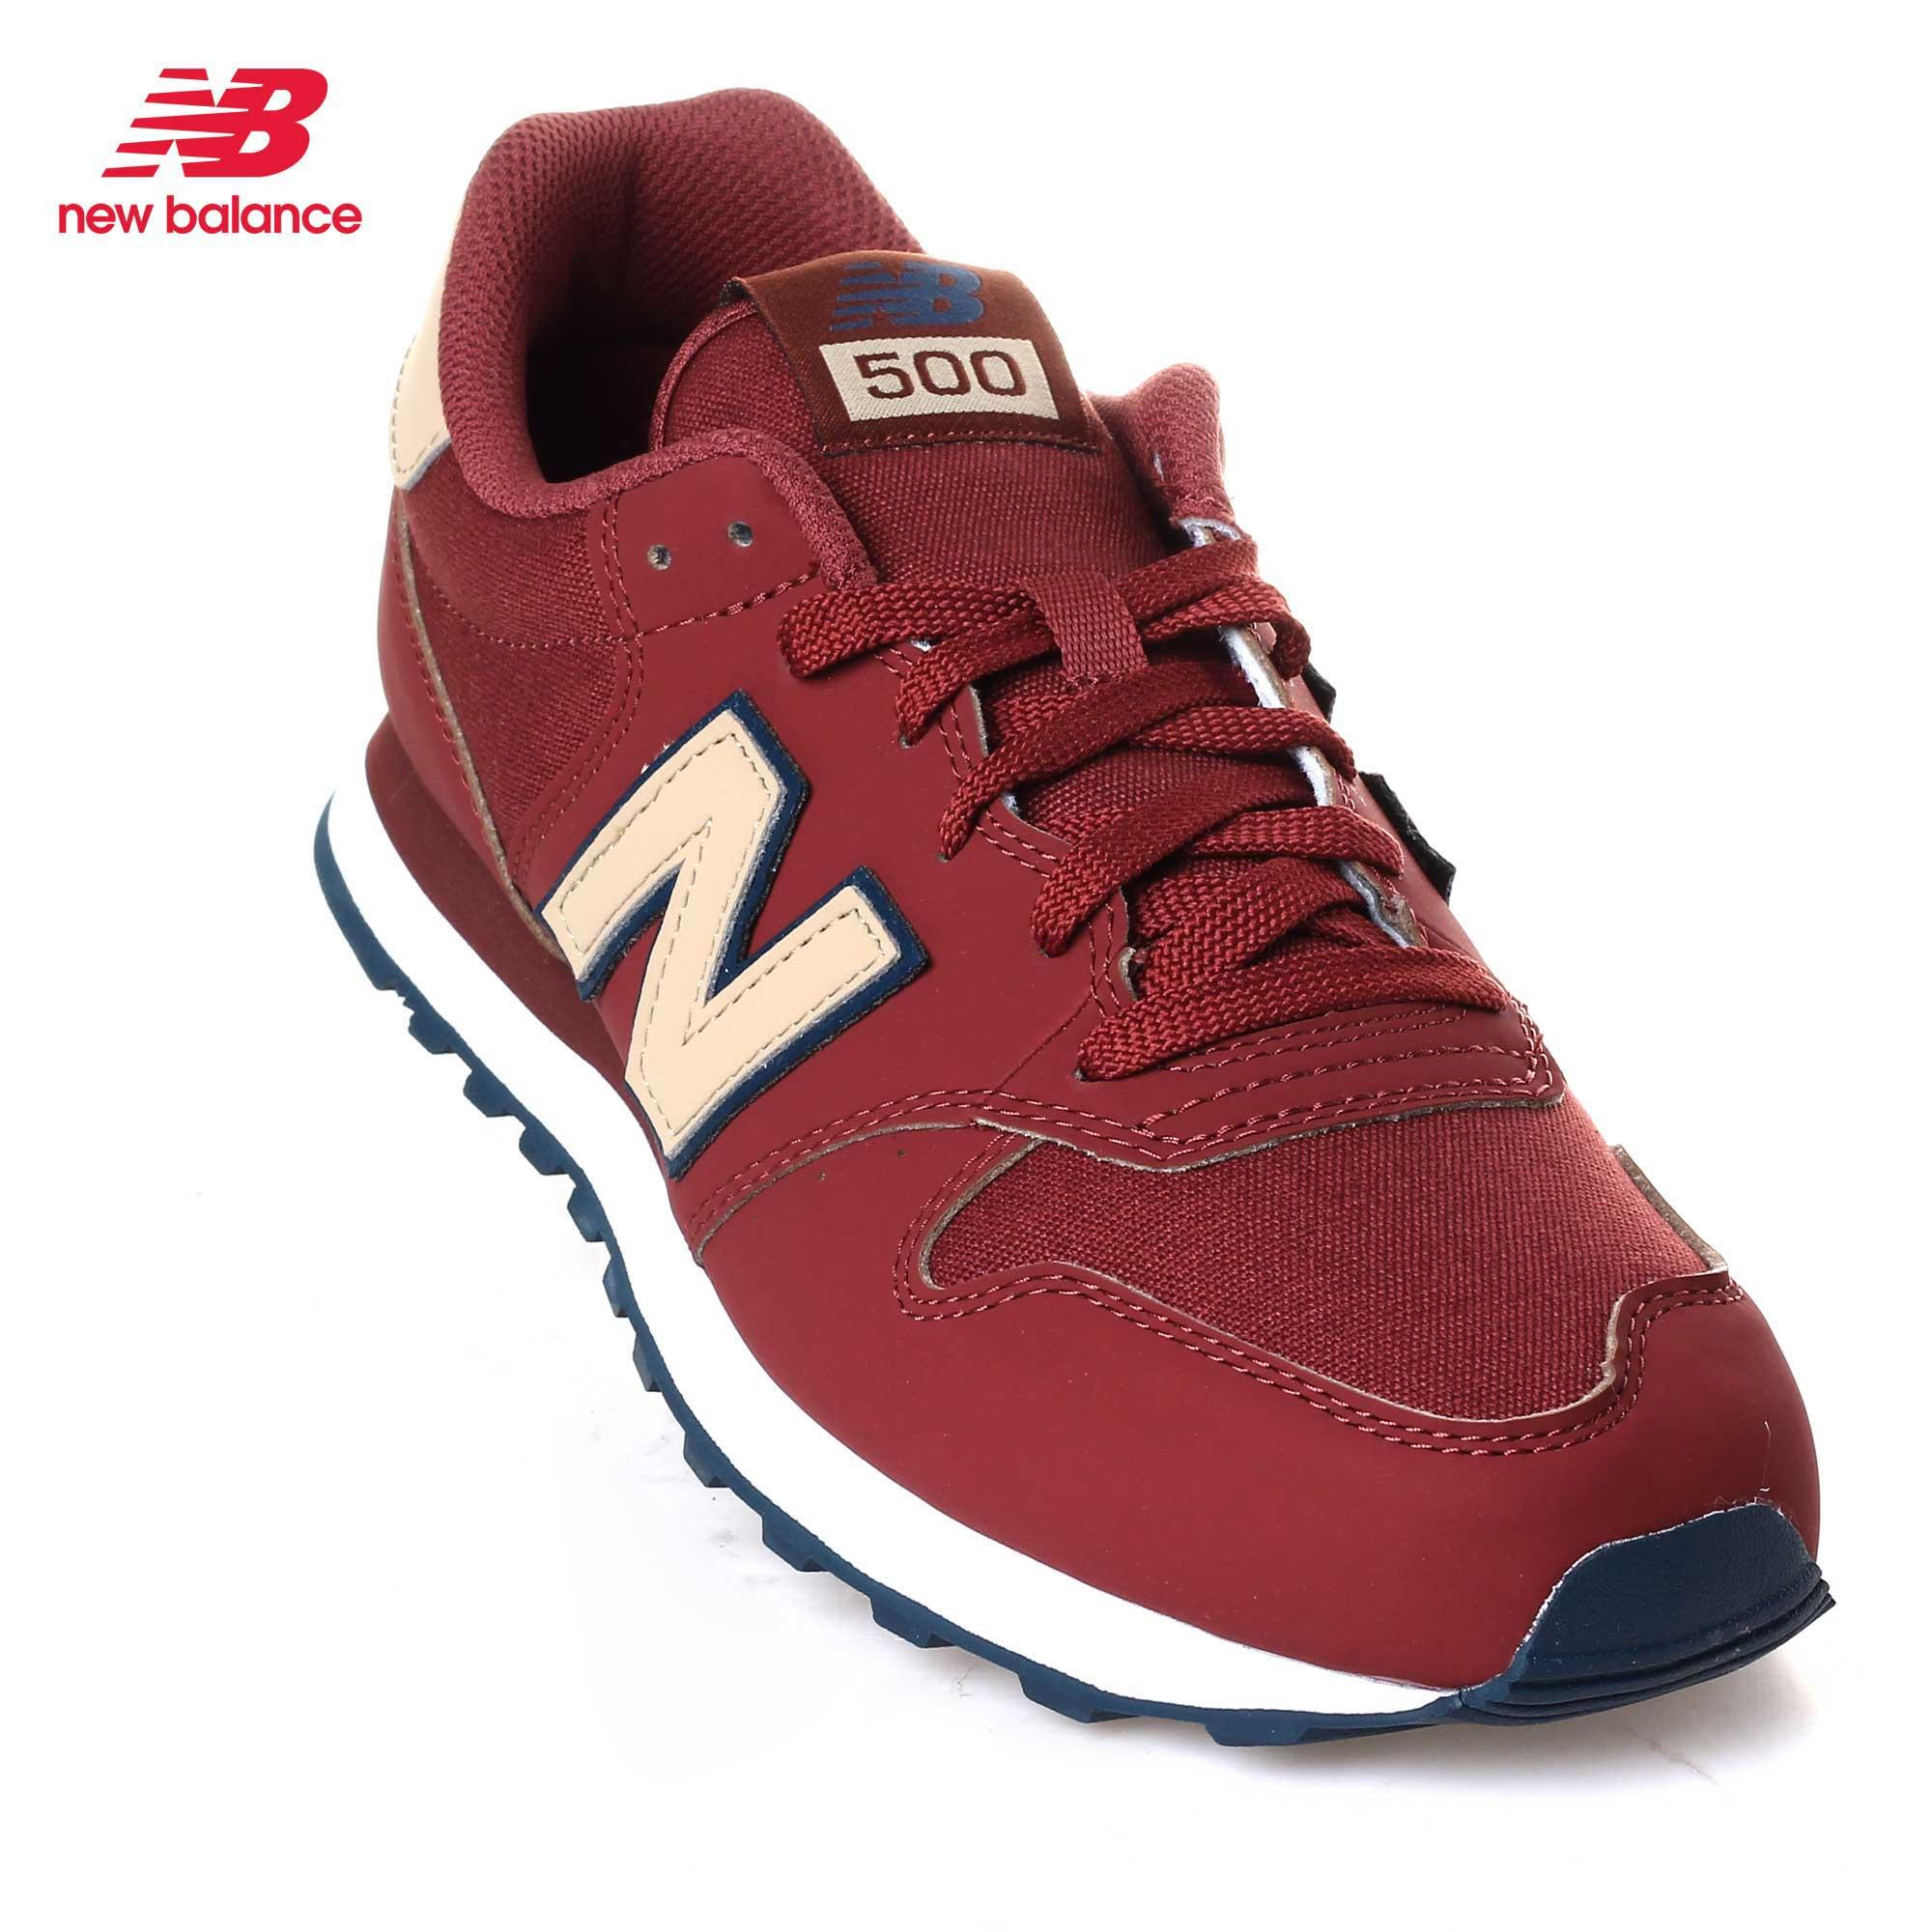 053bf641c8a8a New Balance Philippines -New Balance Shoes for Men for sale - prices ...